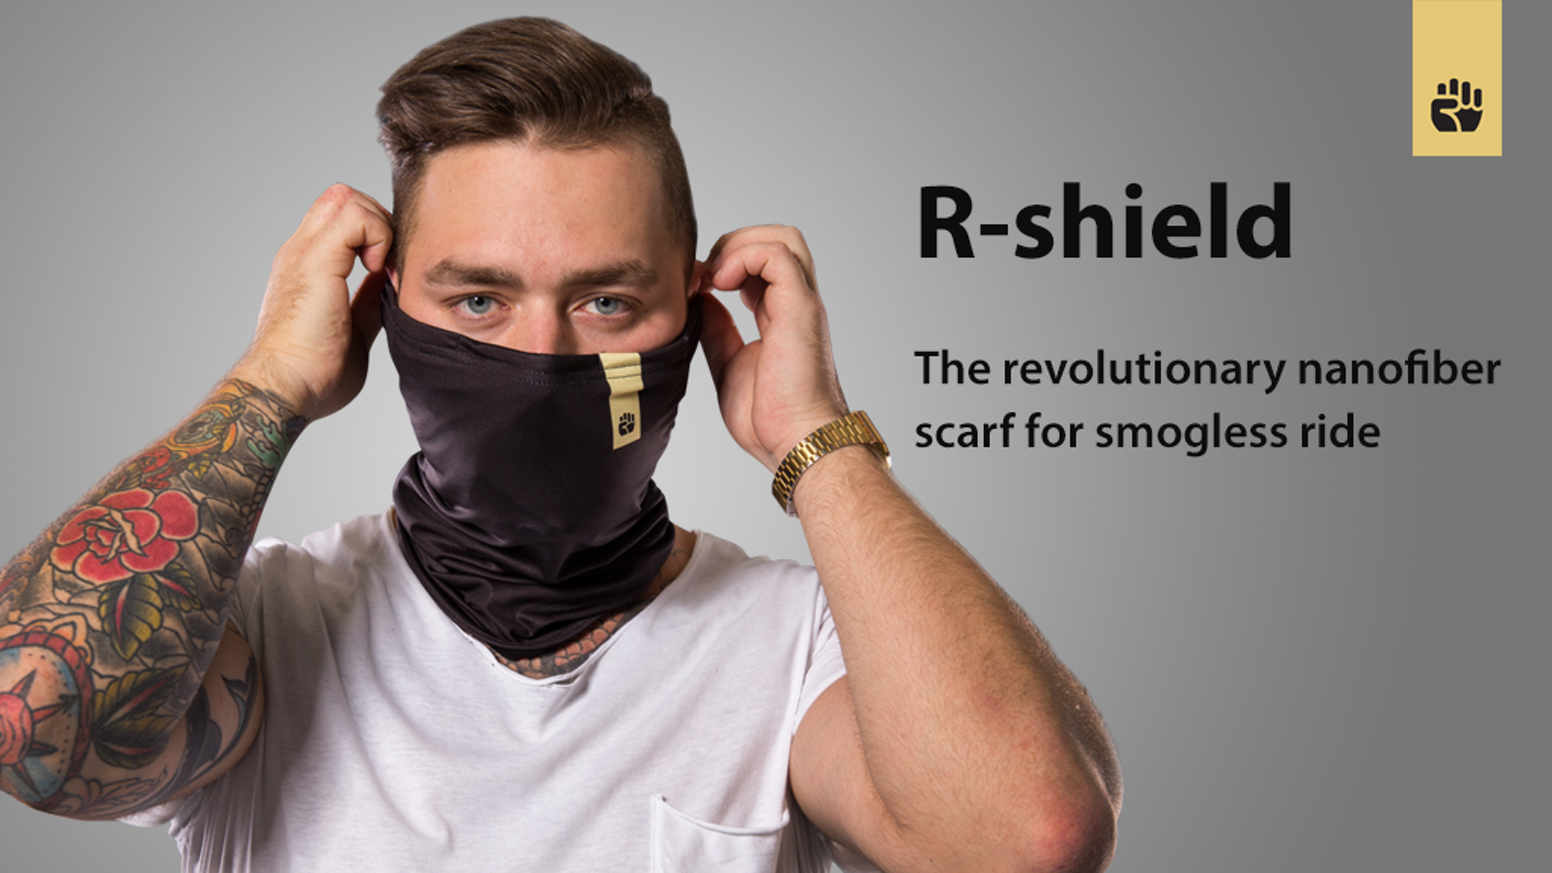 The first real smog protection that you can easily wear while staying classy. No exchangeable filters anymore.